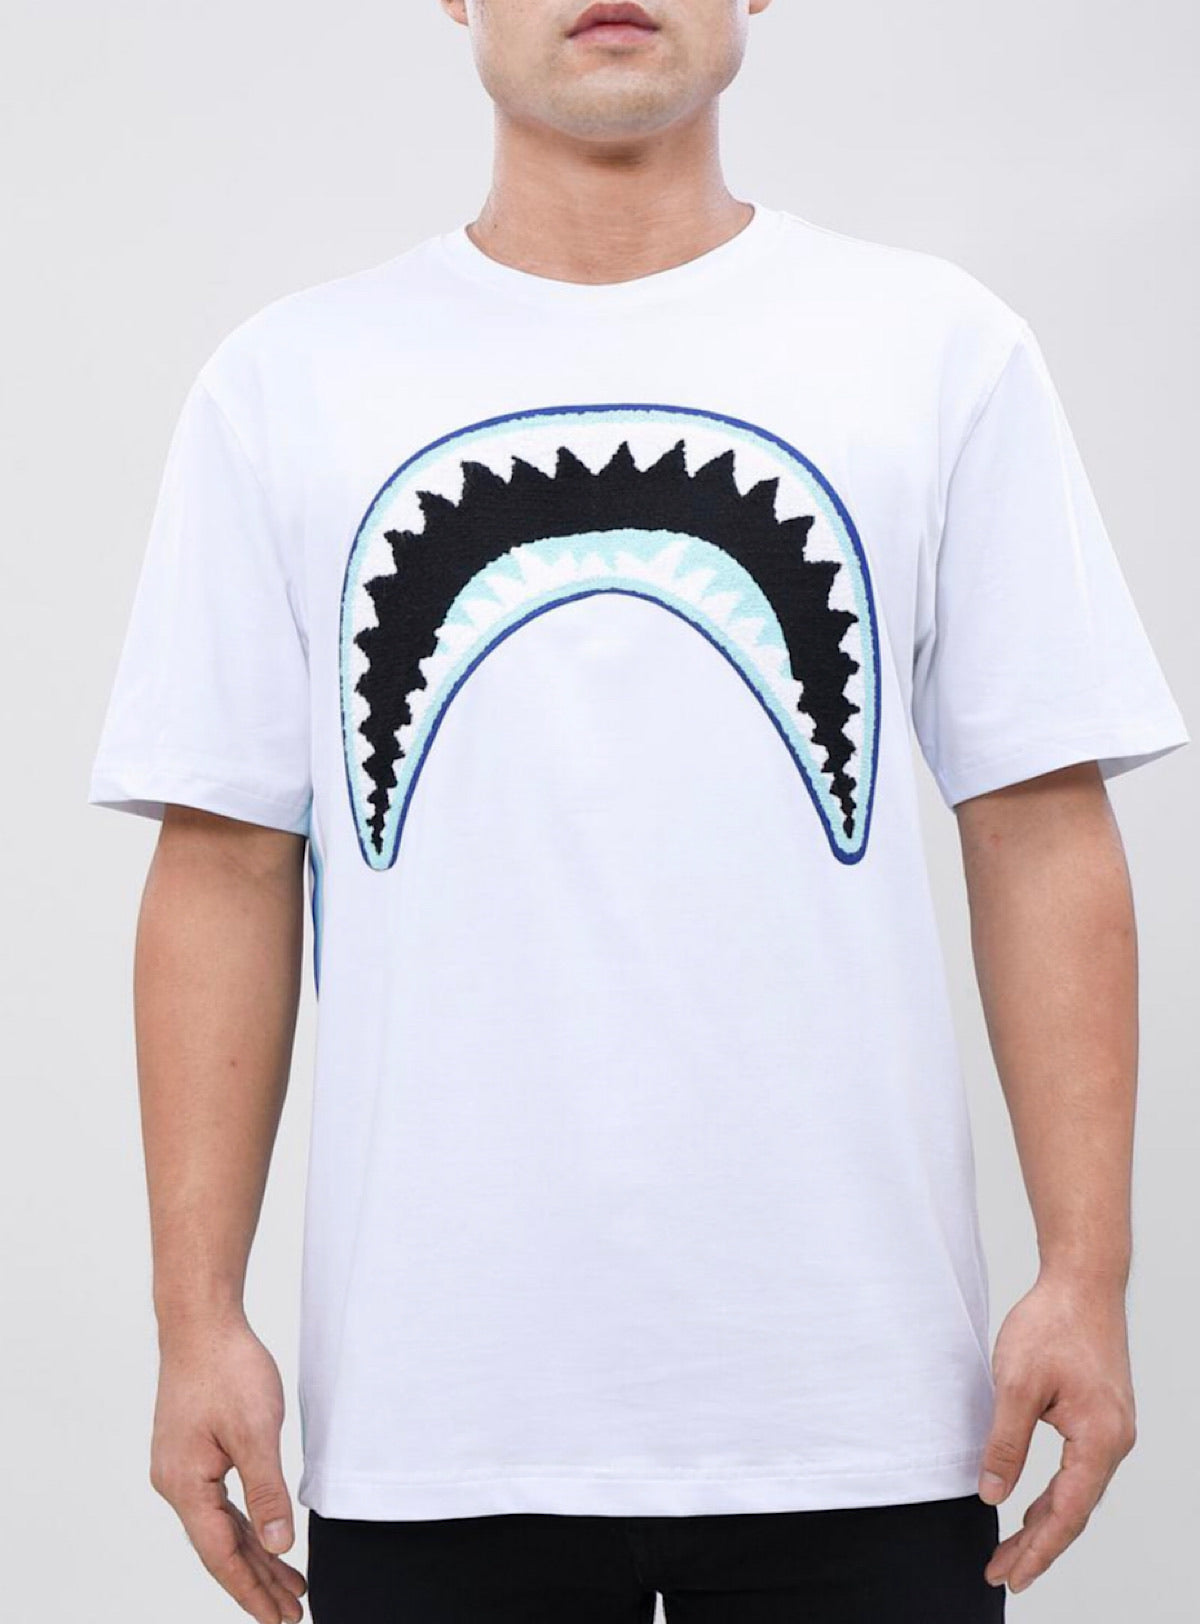 Eternity T-Shirt - Shark Mouth - White And Blue - E1133198